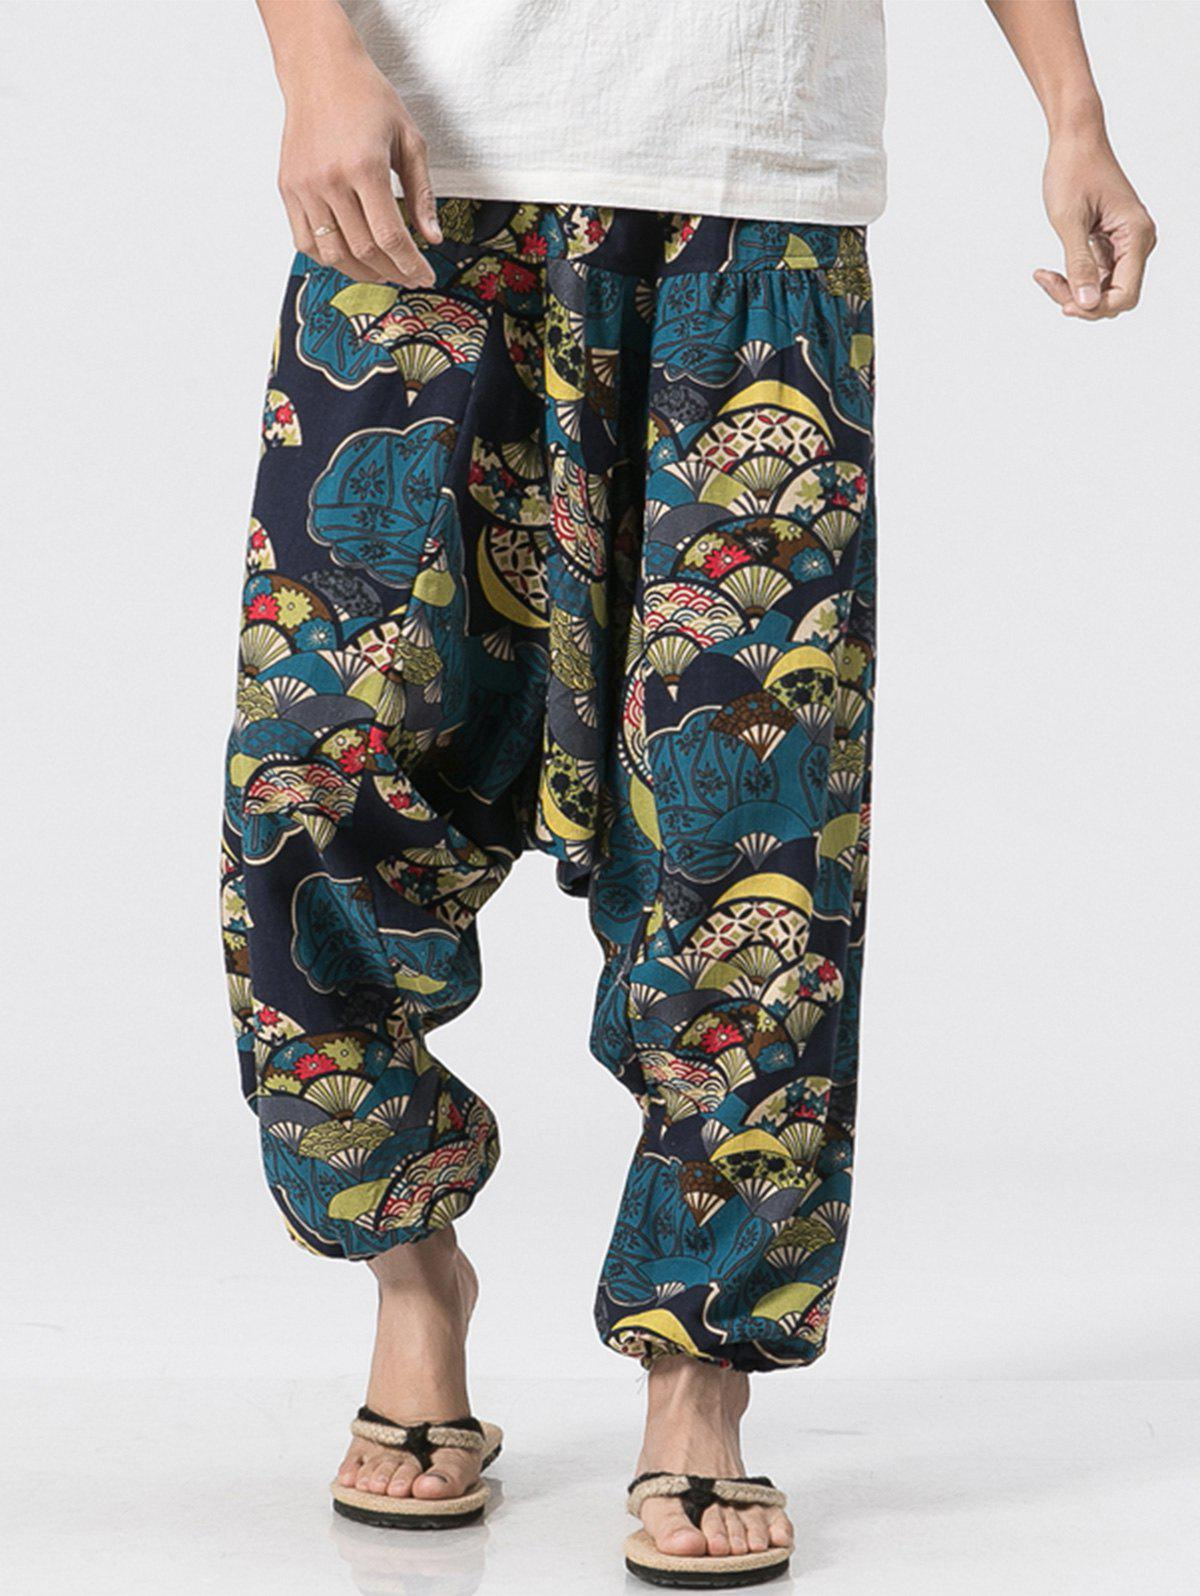 Cotton Linen Japanese Printed Jogger Pants - COLORMIX L